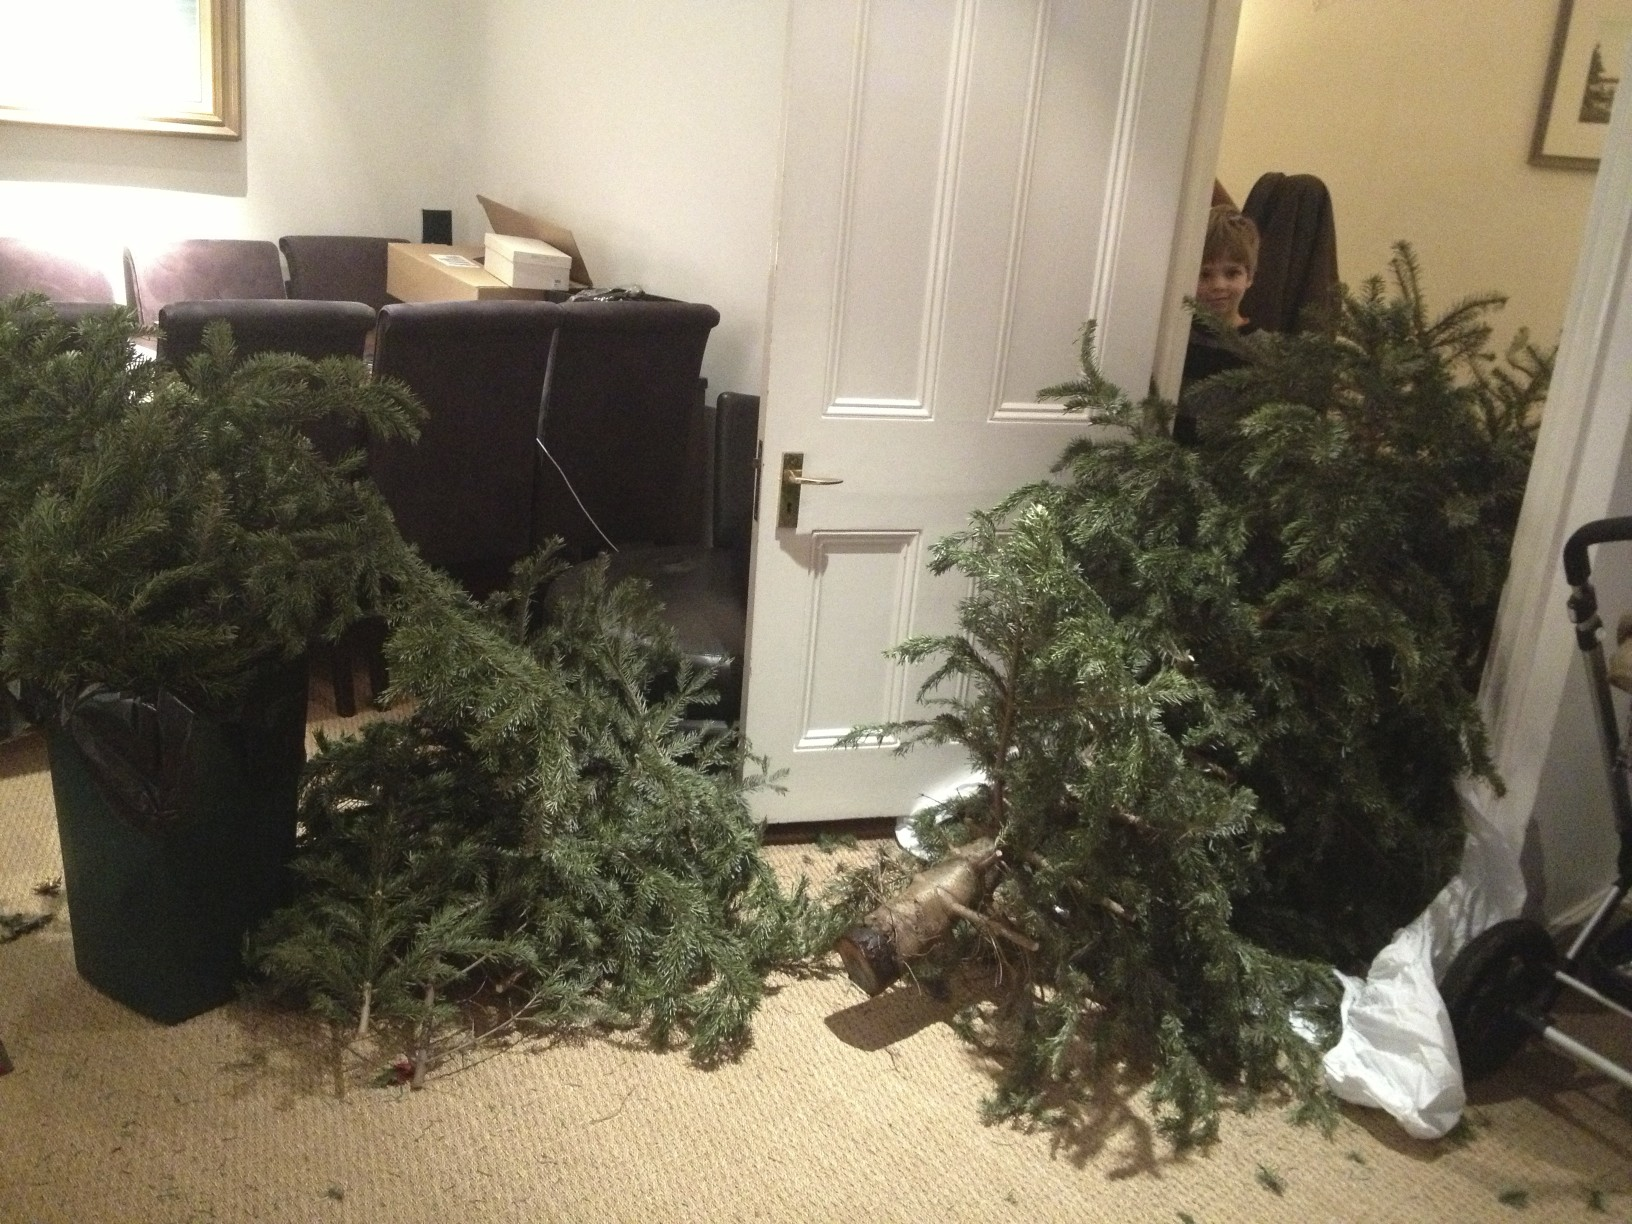 We said goodbye to the christmas tree. Which we had to dismember to fit back out the door.